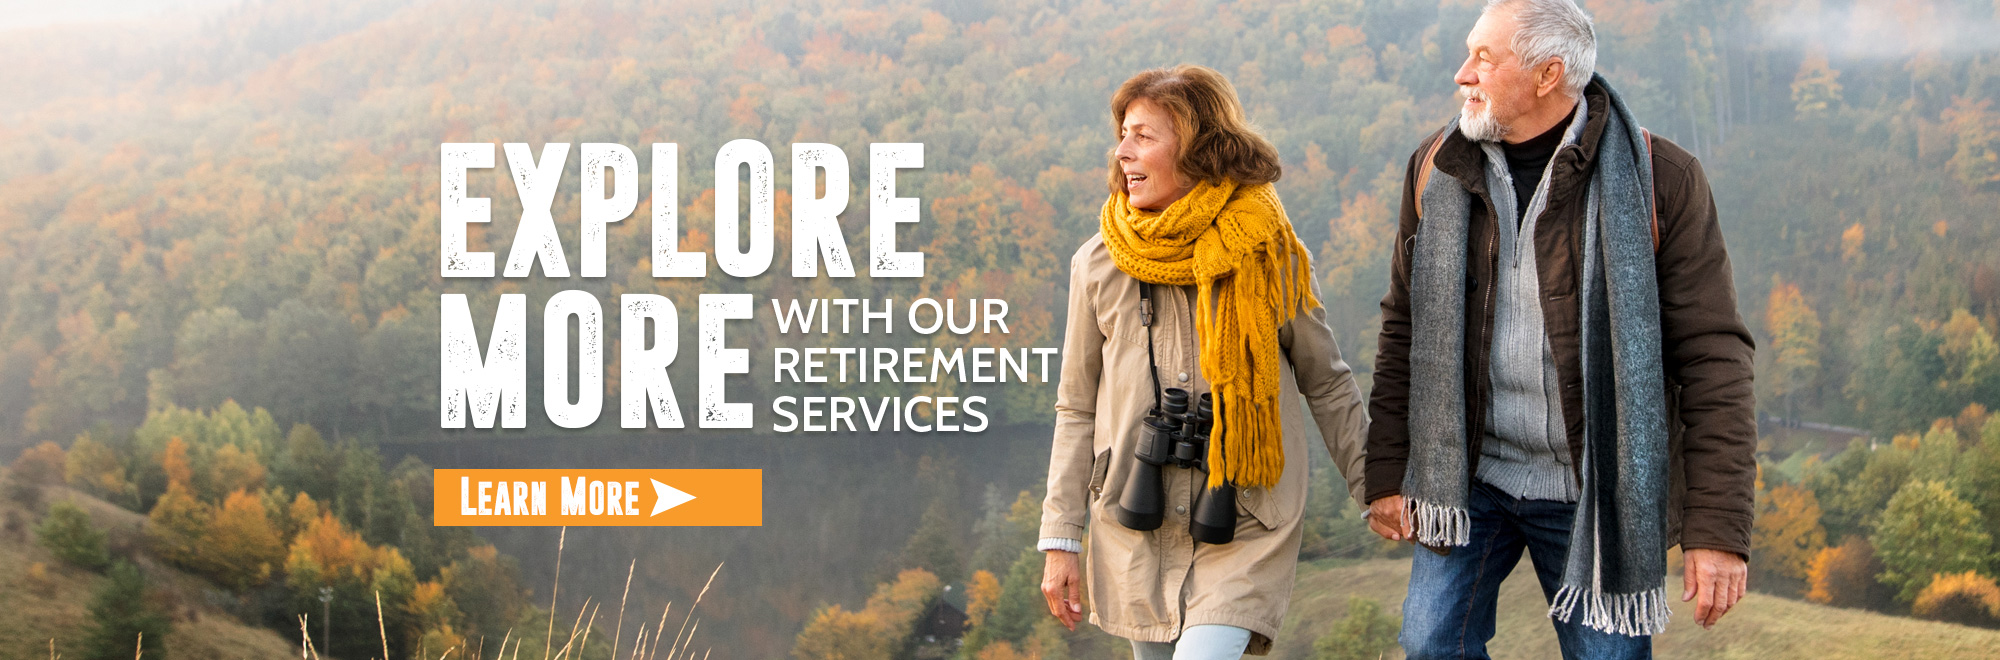 Explore more with our retirement services